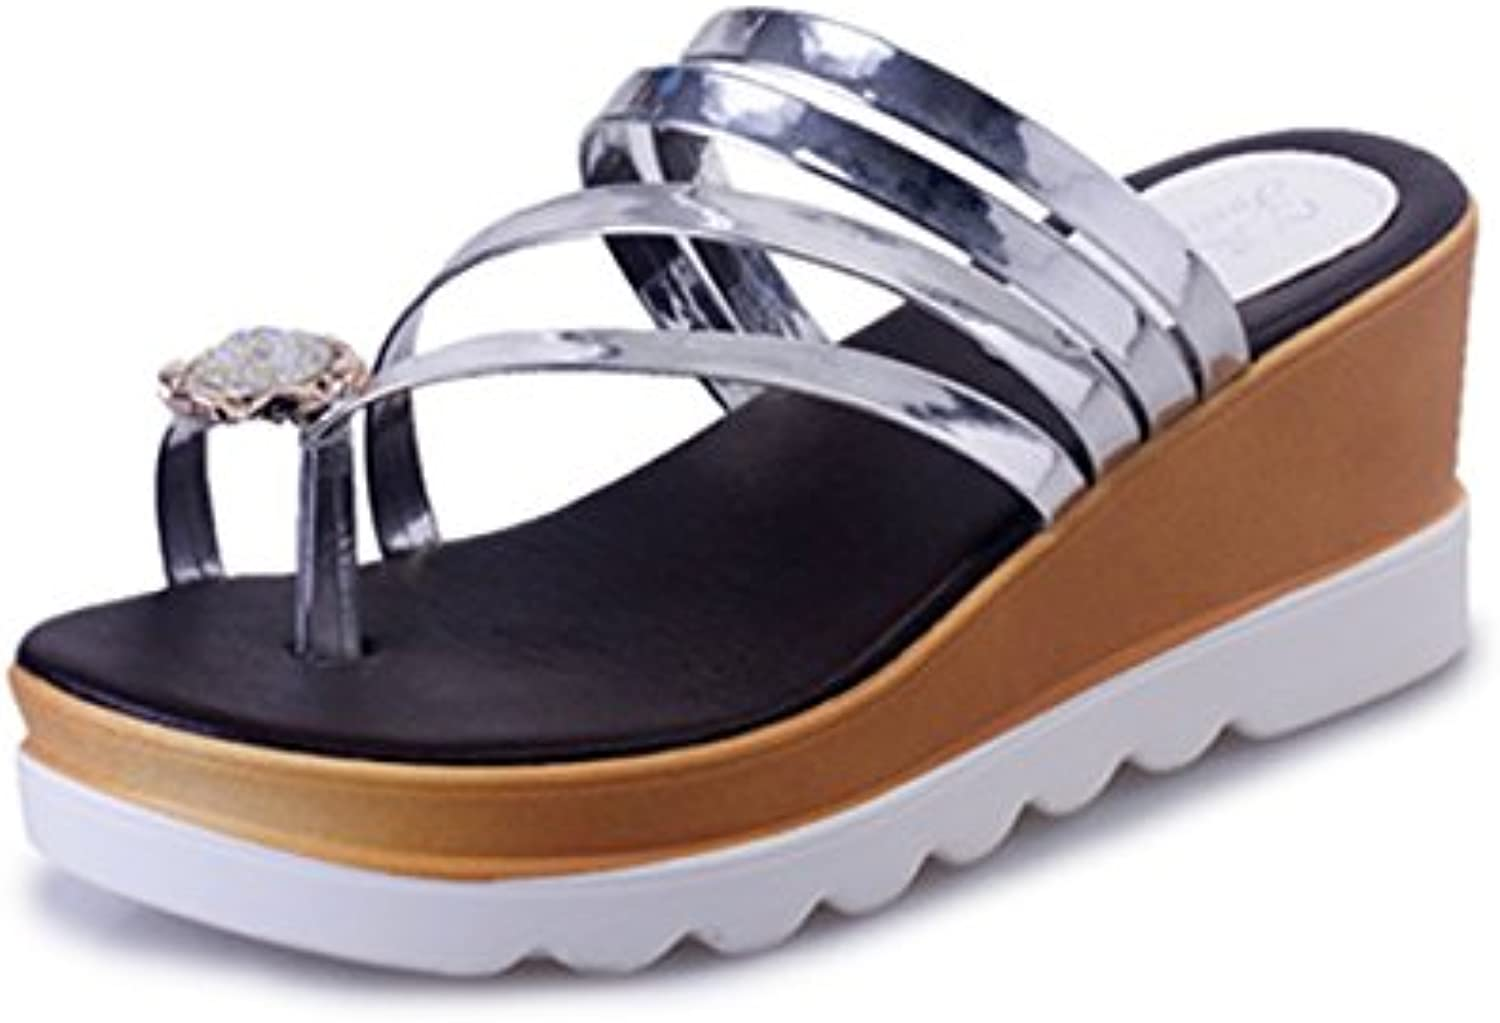 KAI-The slope with shoes _2017 summer drill sleeve toe sandals Korean tide flat slope with all-match fashion leisure shoes wholesale,silvery,Thirty-five